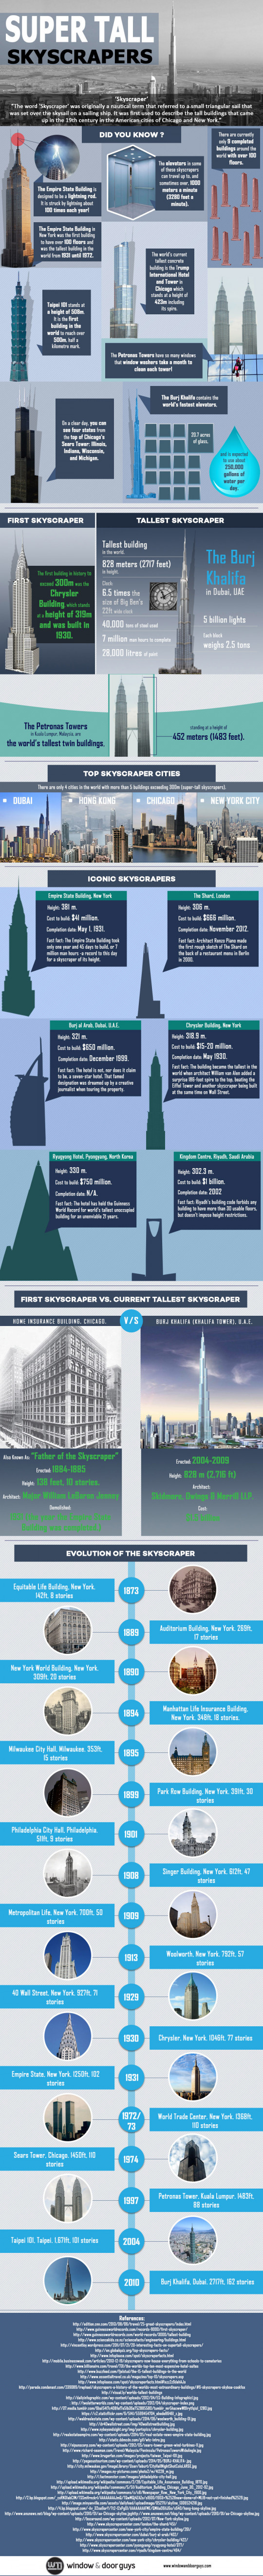 Super Tall Skyscraper Info-graphic